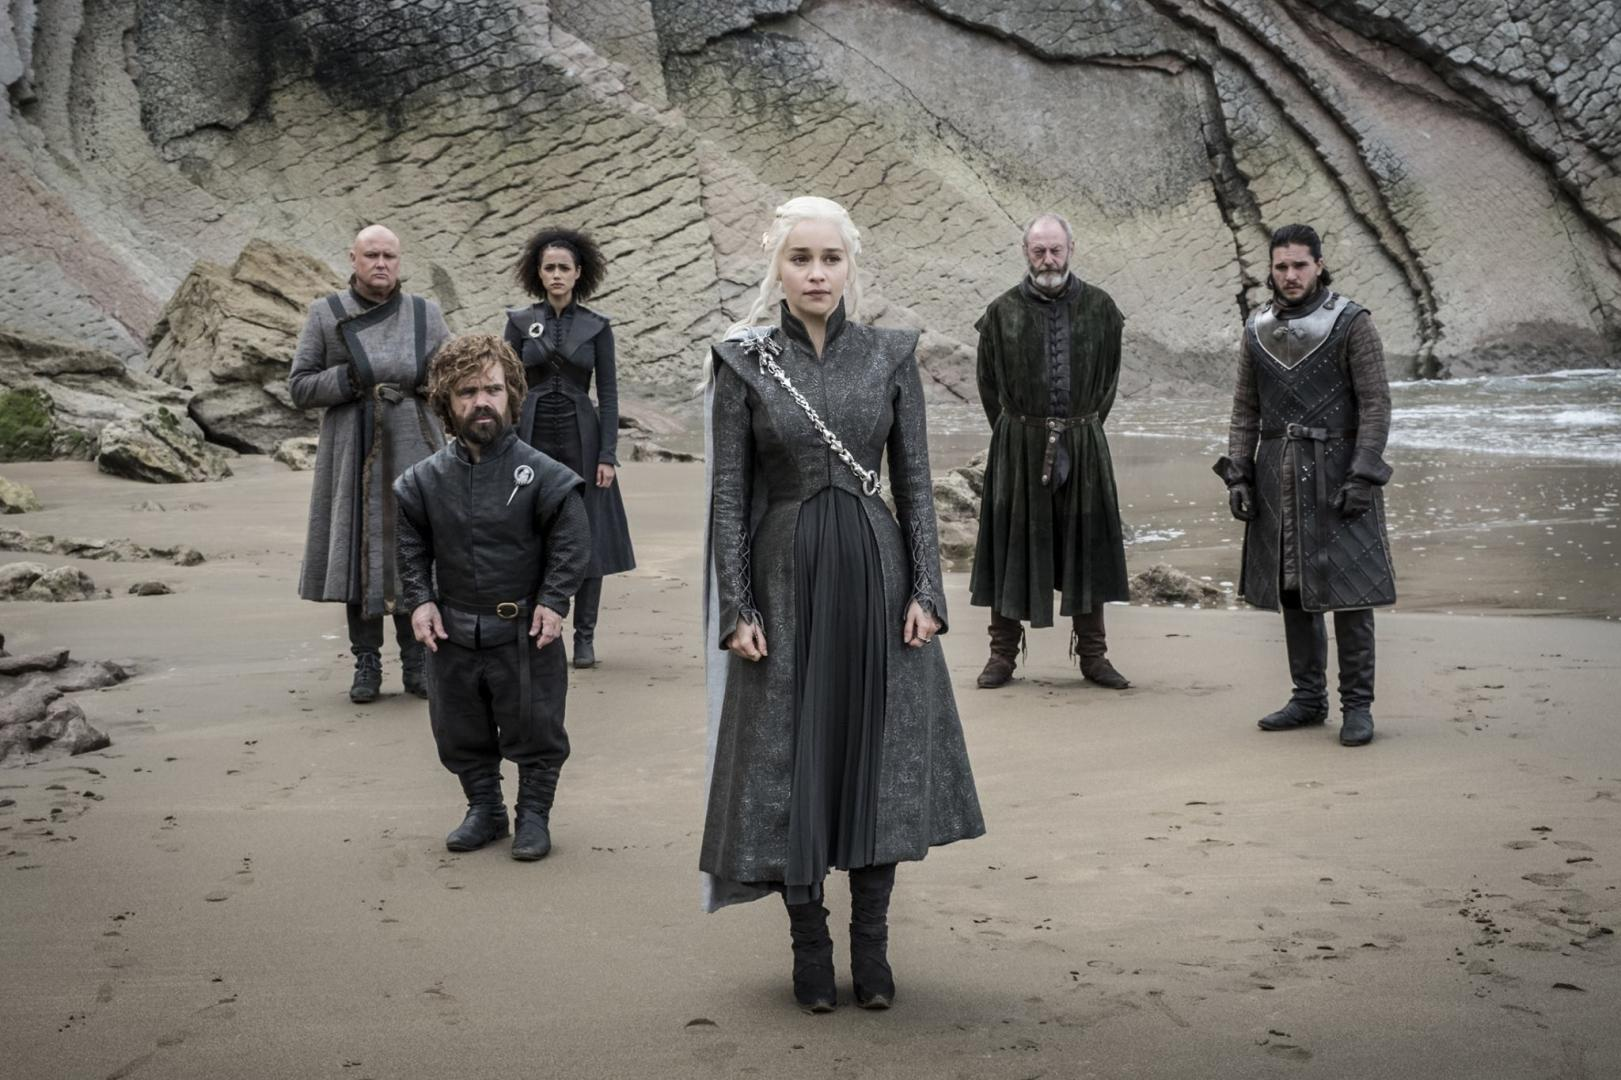 game_of_thrones4_1_kep